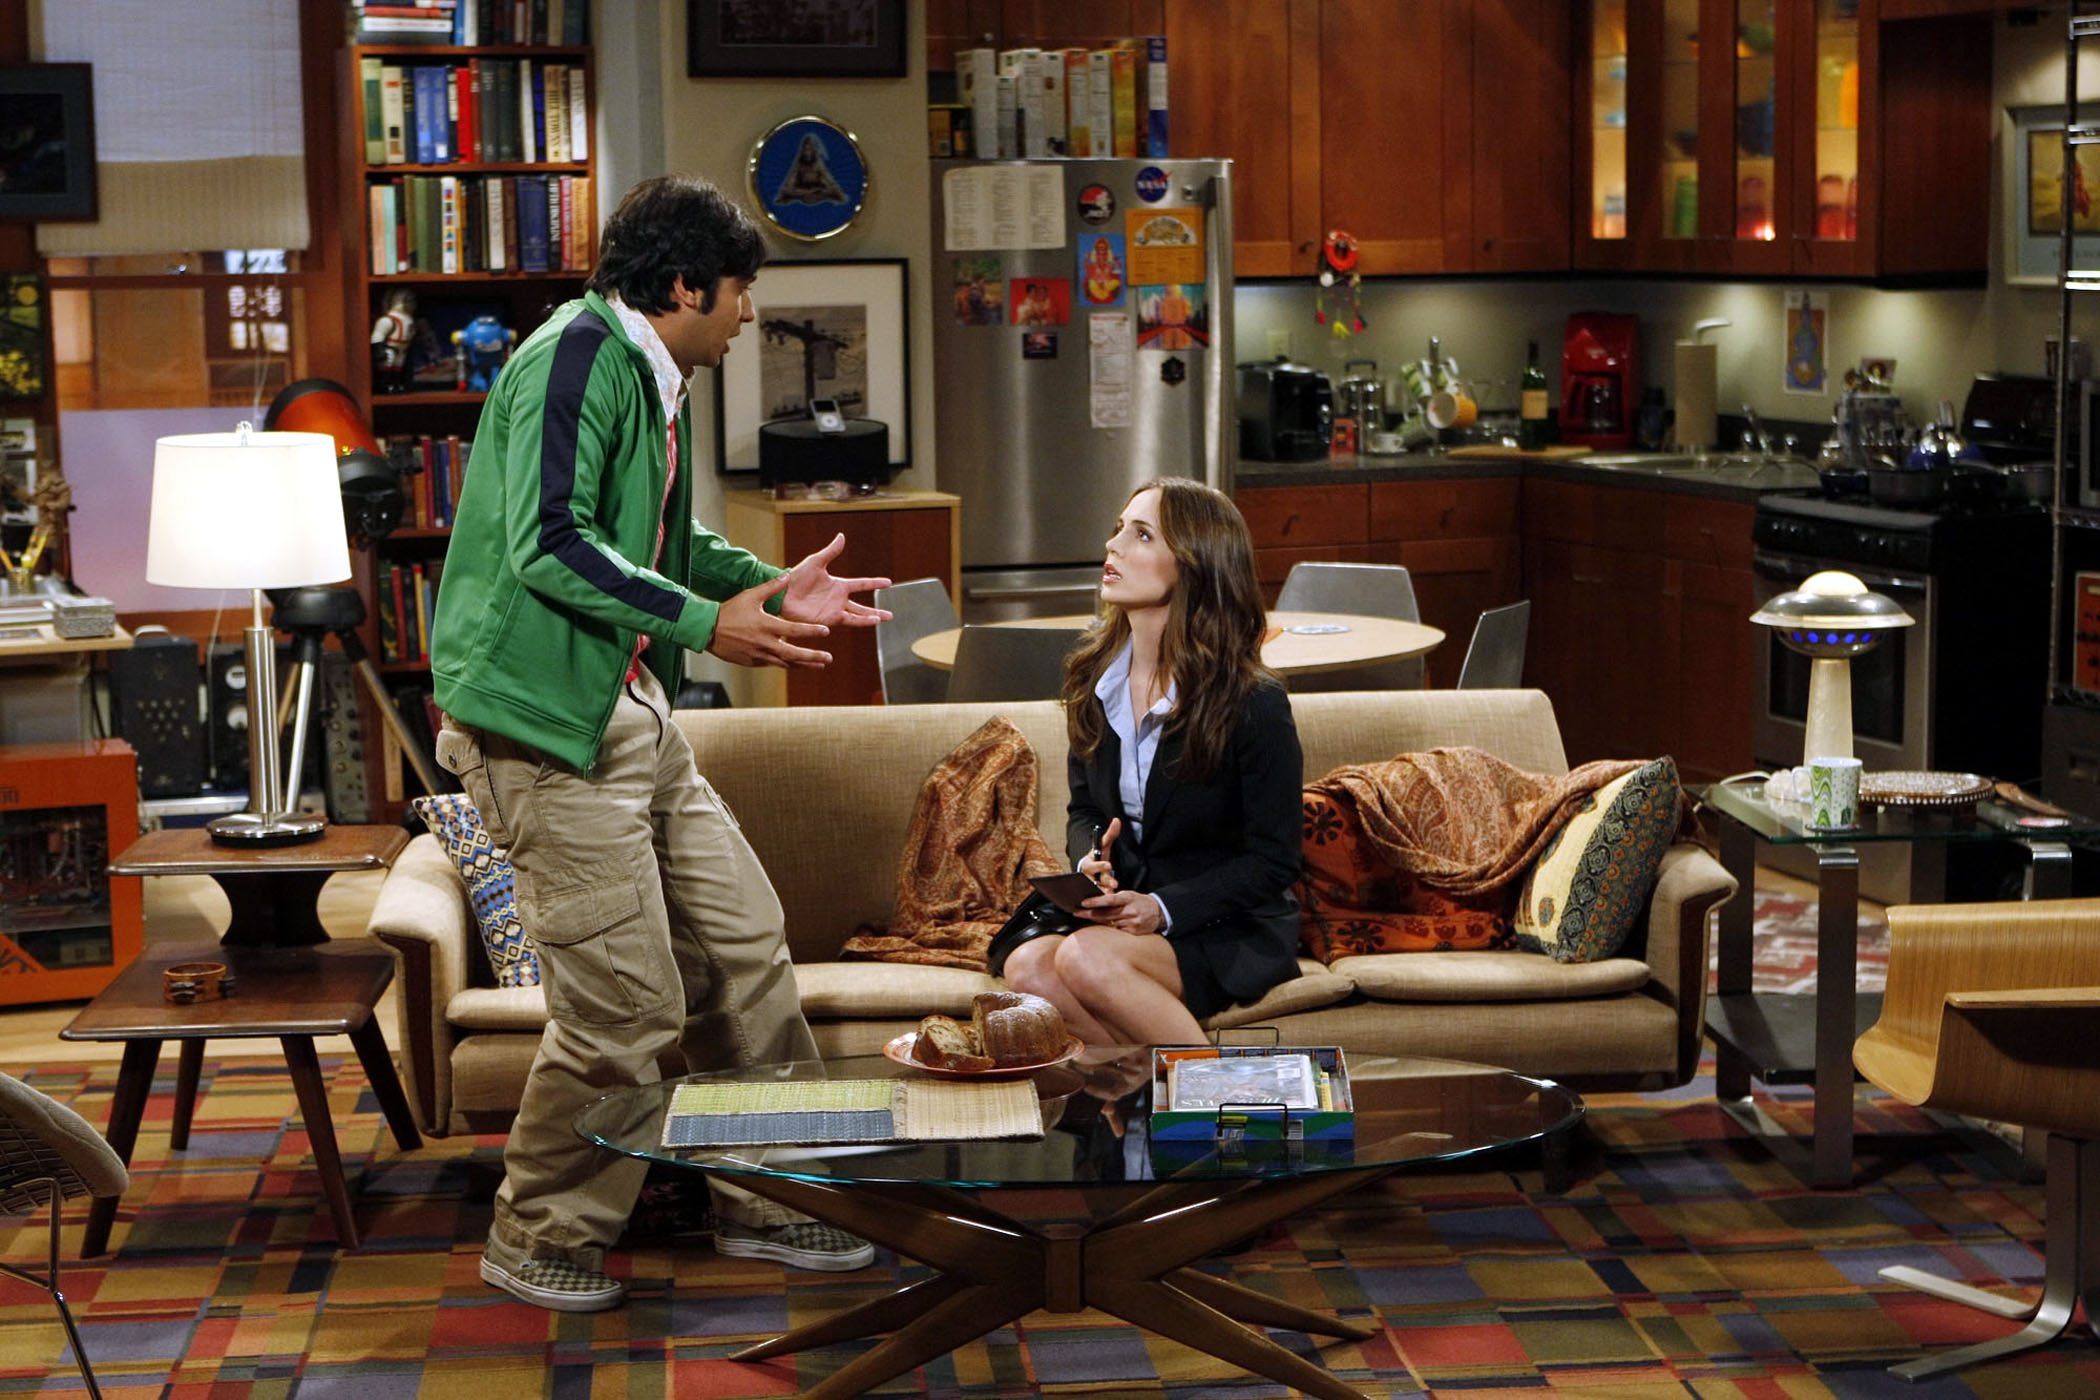 """""""The Apology Insufficiency"""" -- Sheldon's answers during an FBI interview put Wolowitz's security clearance in jeopardy, on THE BIG BANG THEORY, Thursday, Nov. 4 (8:00-8:31 PM, ET/PT) on the CBS Television Network.  Eliza Dushku pictured here with Kunal Nayyar, guest stars as the agent interviewing Wolowitz's friends. Photo: Monty Brinton/CBS ©2010 CBS Broadcasting Inc. All Rights Reserved"""